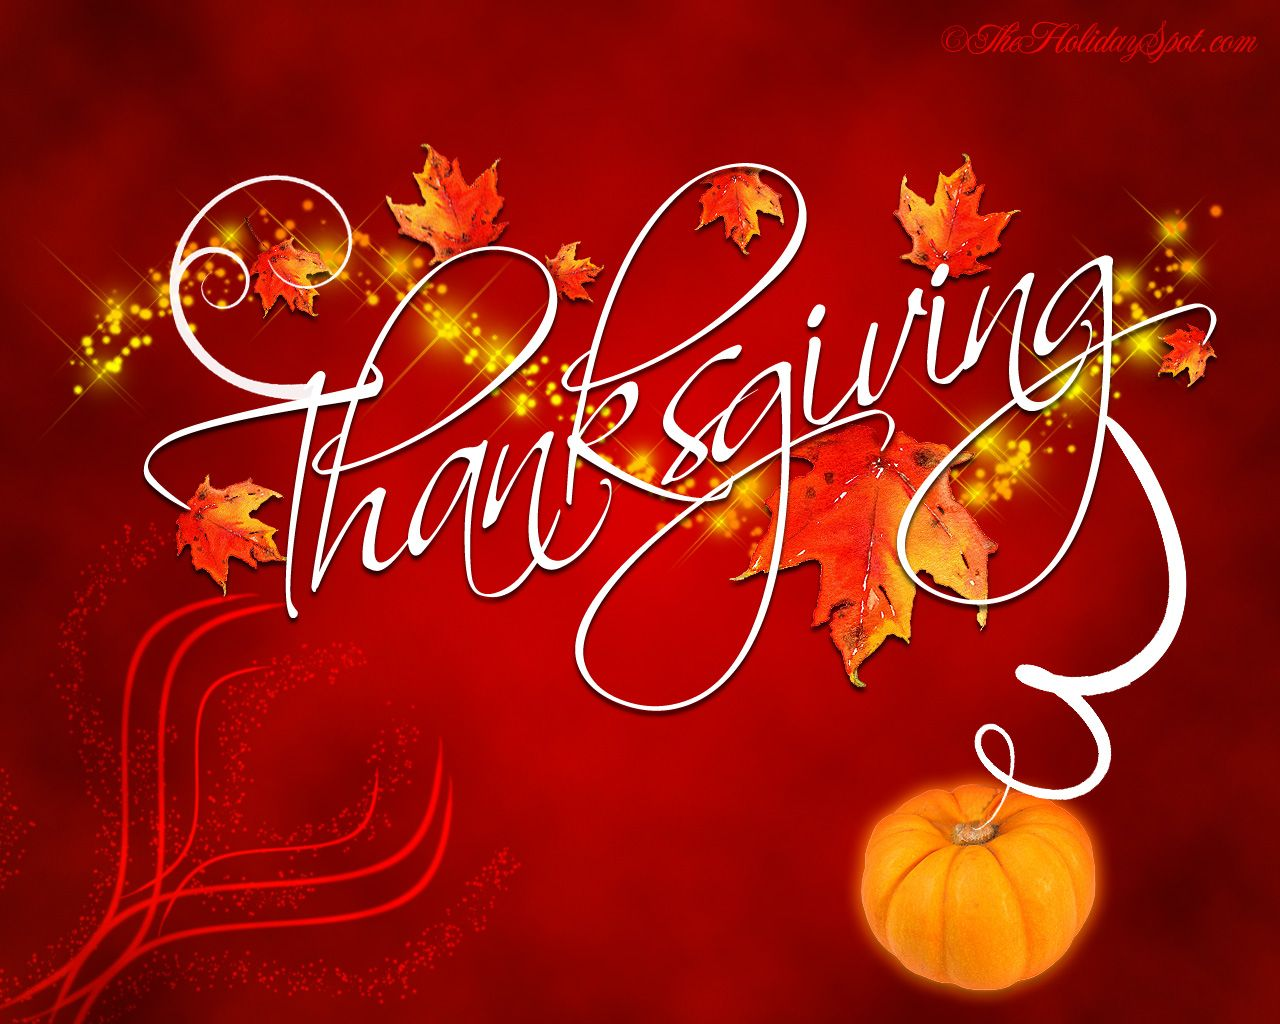 25 Happy Thanksgiving Day 2012 Hd Wallpapers Happy Thanksgiving